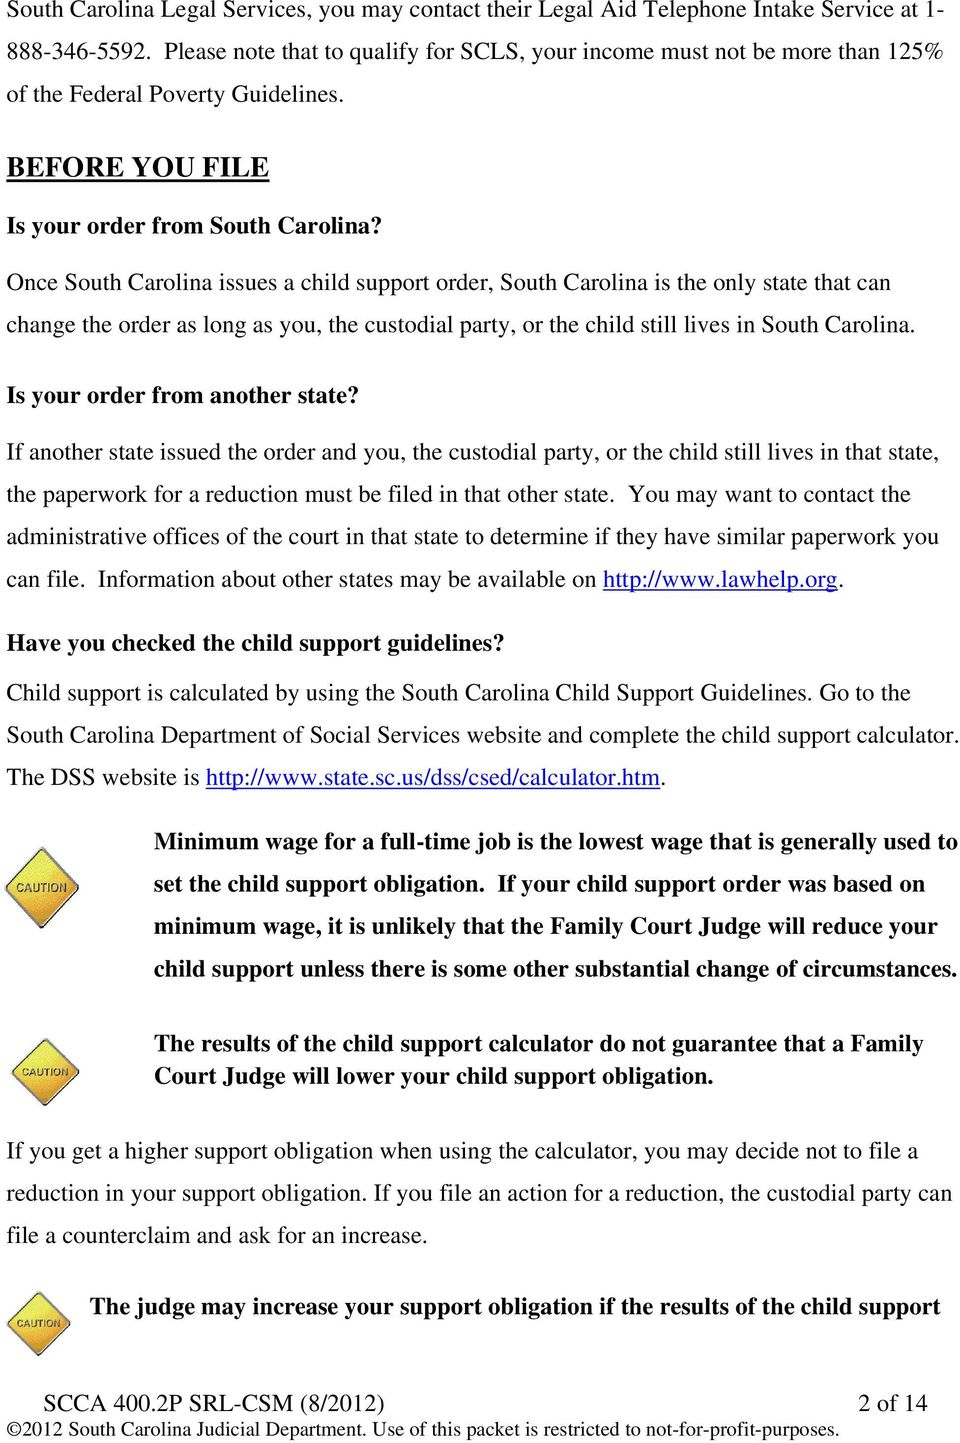 Once South Carolina issues a child support order, South Carolina is the only state that can change the order as long as you, the custodial party, or the child still lives in South Carolina.